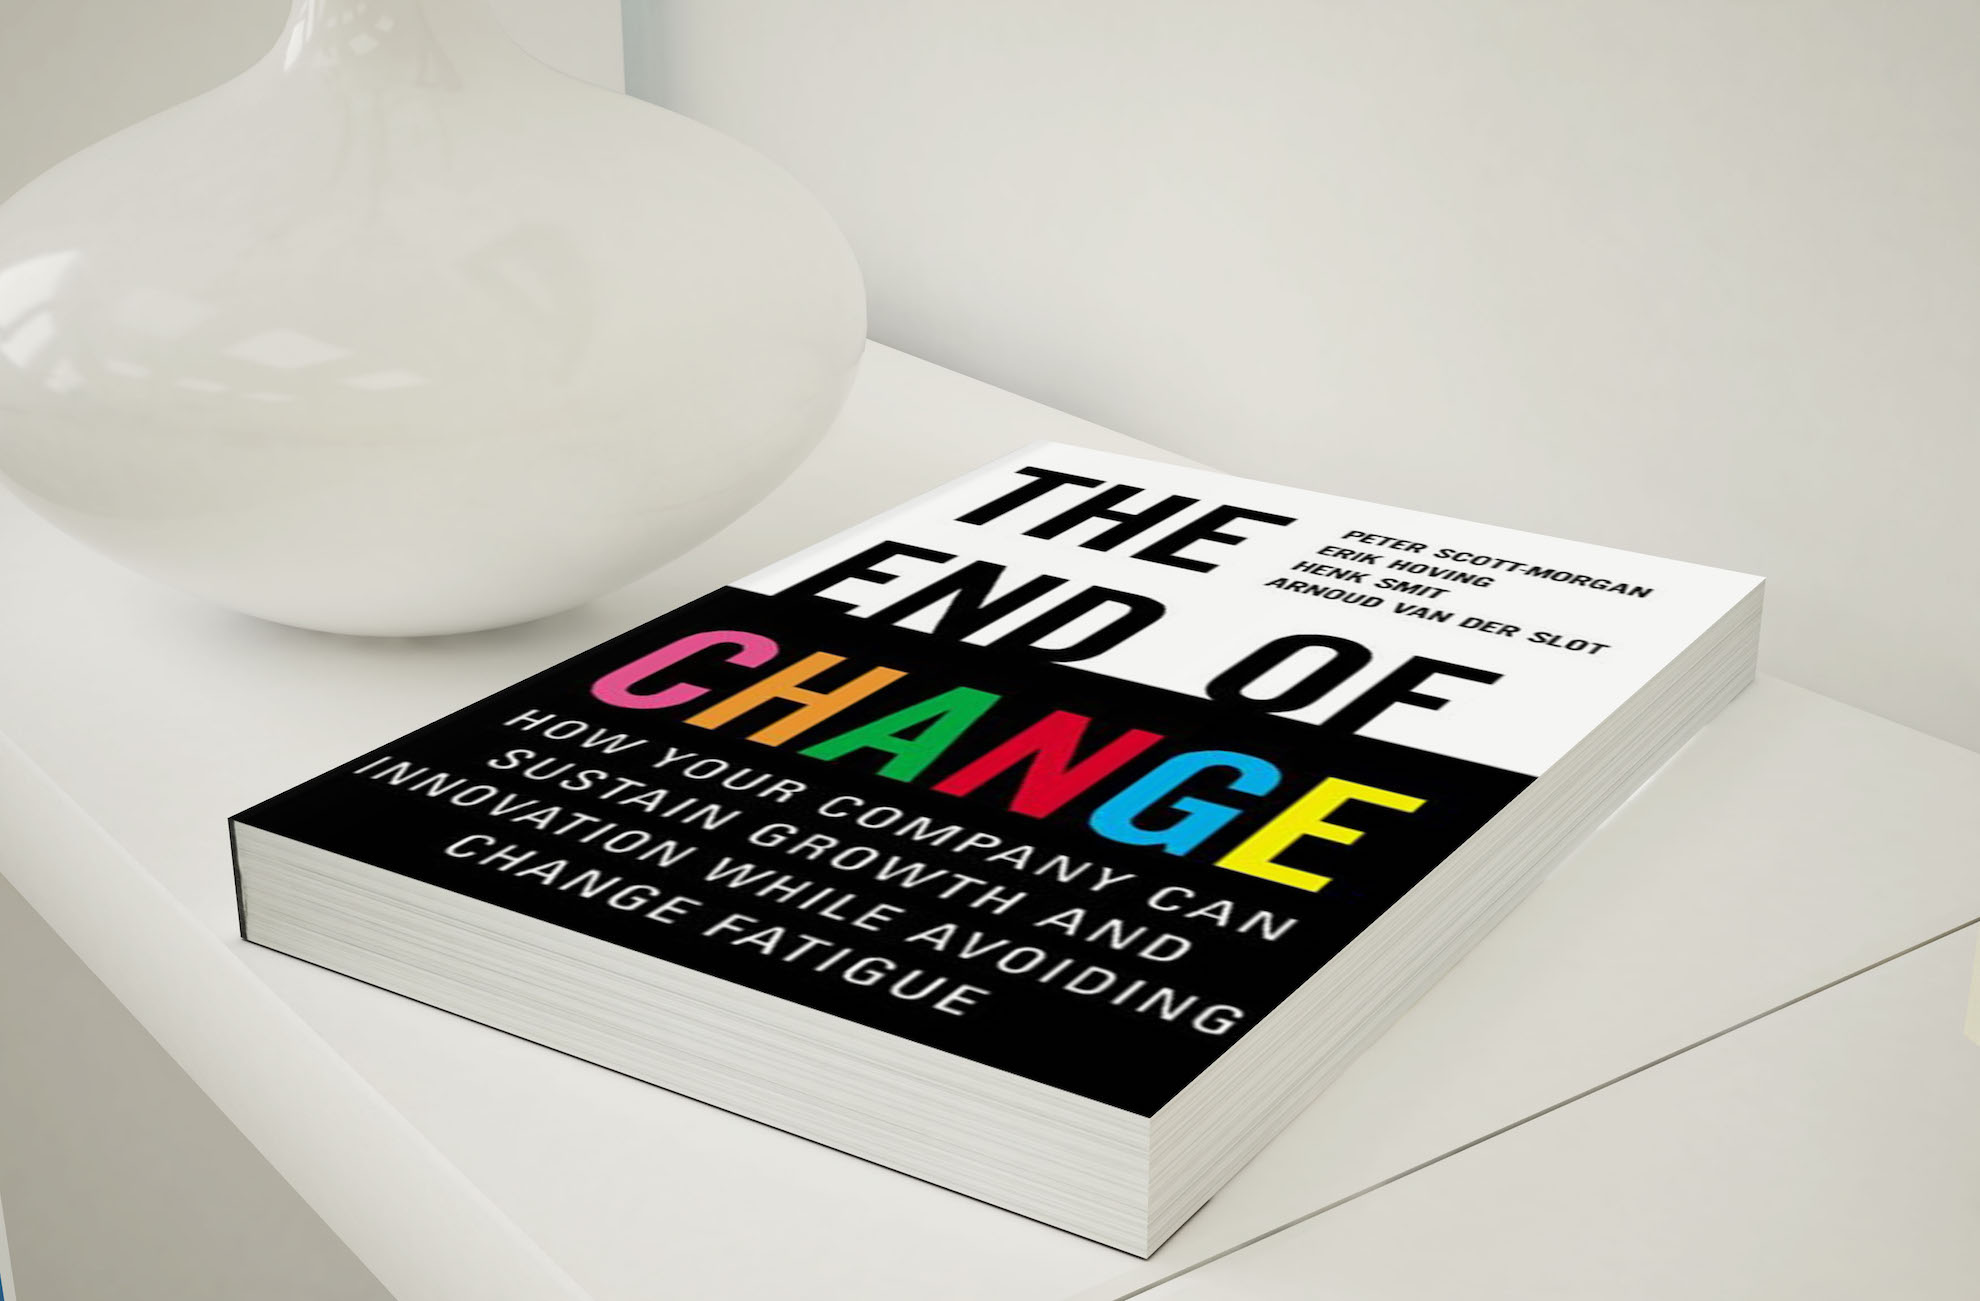 The End of Change